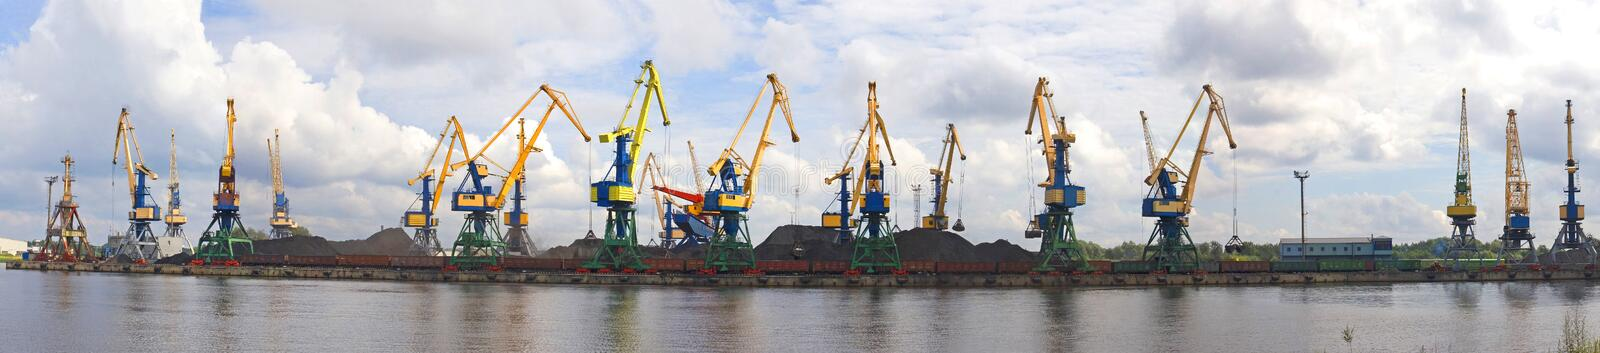 Download Port With Cranes Stock Image - Image: 23675821